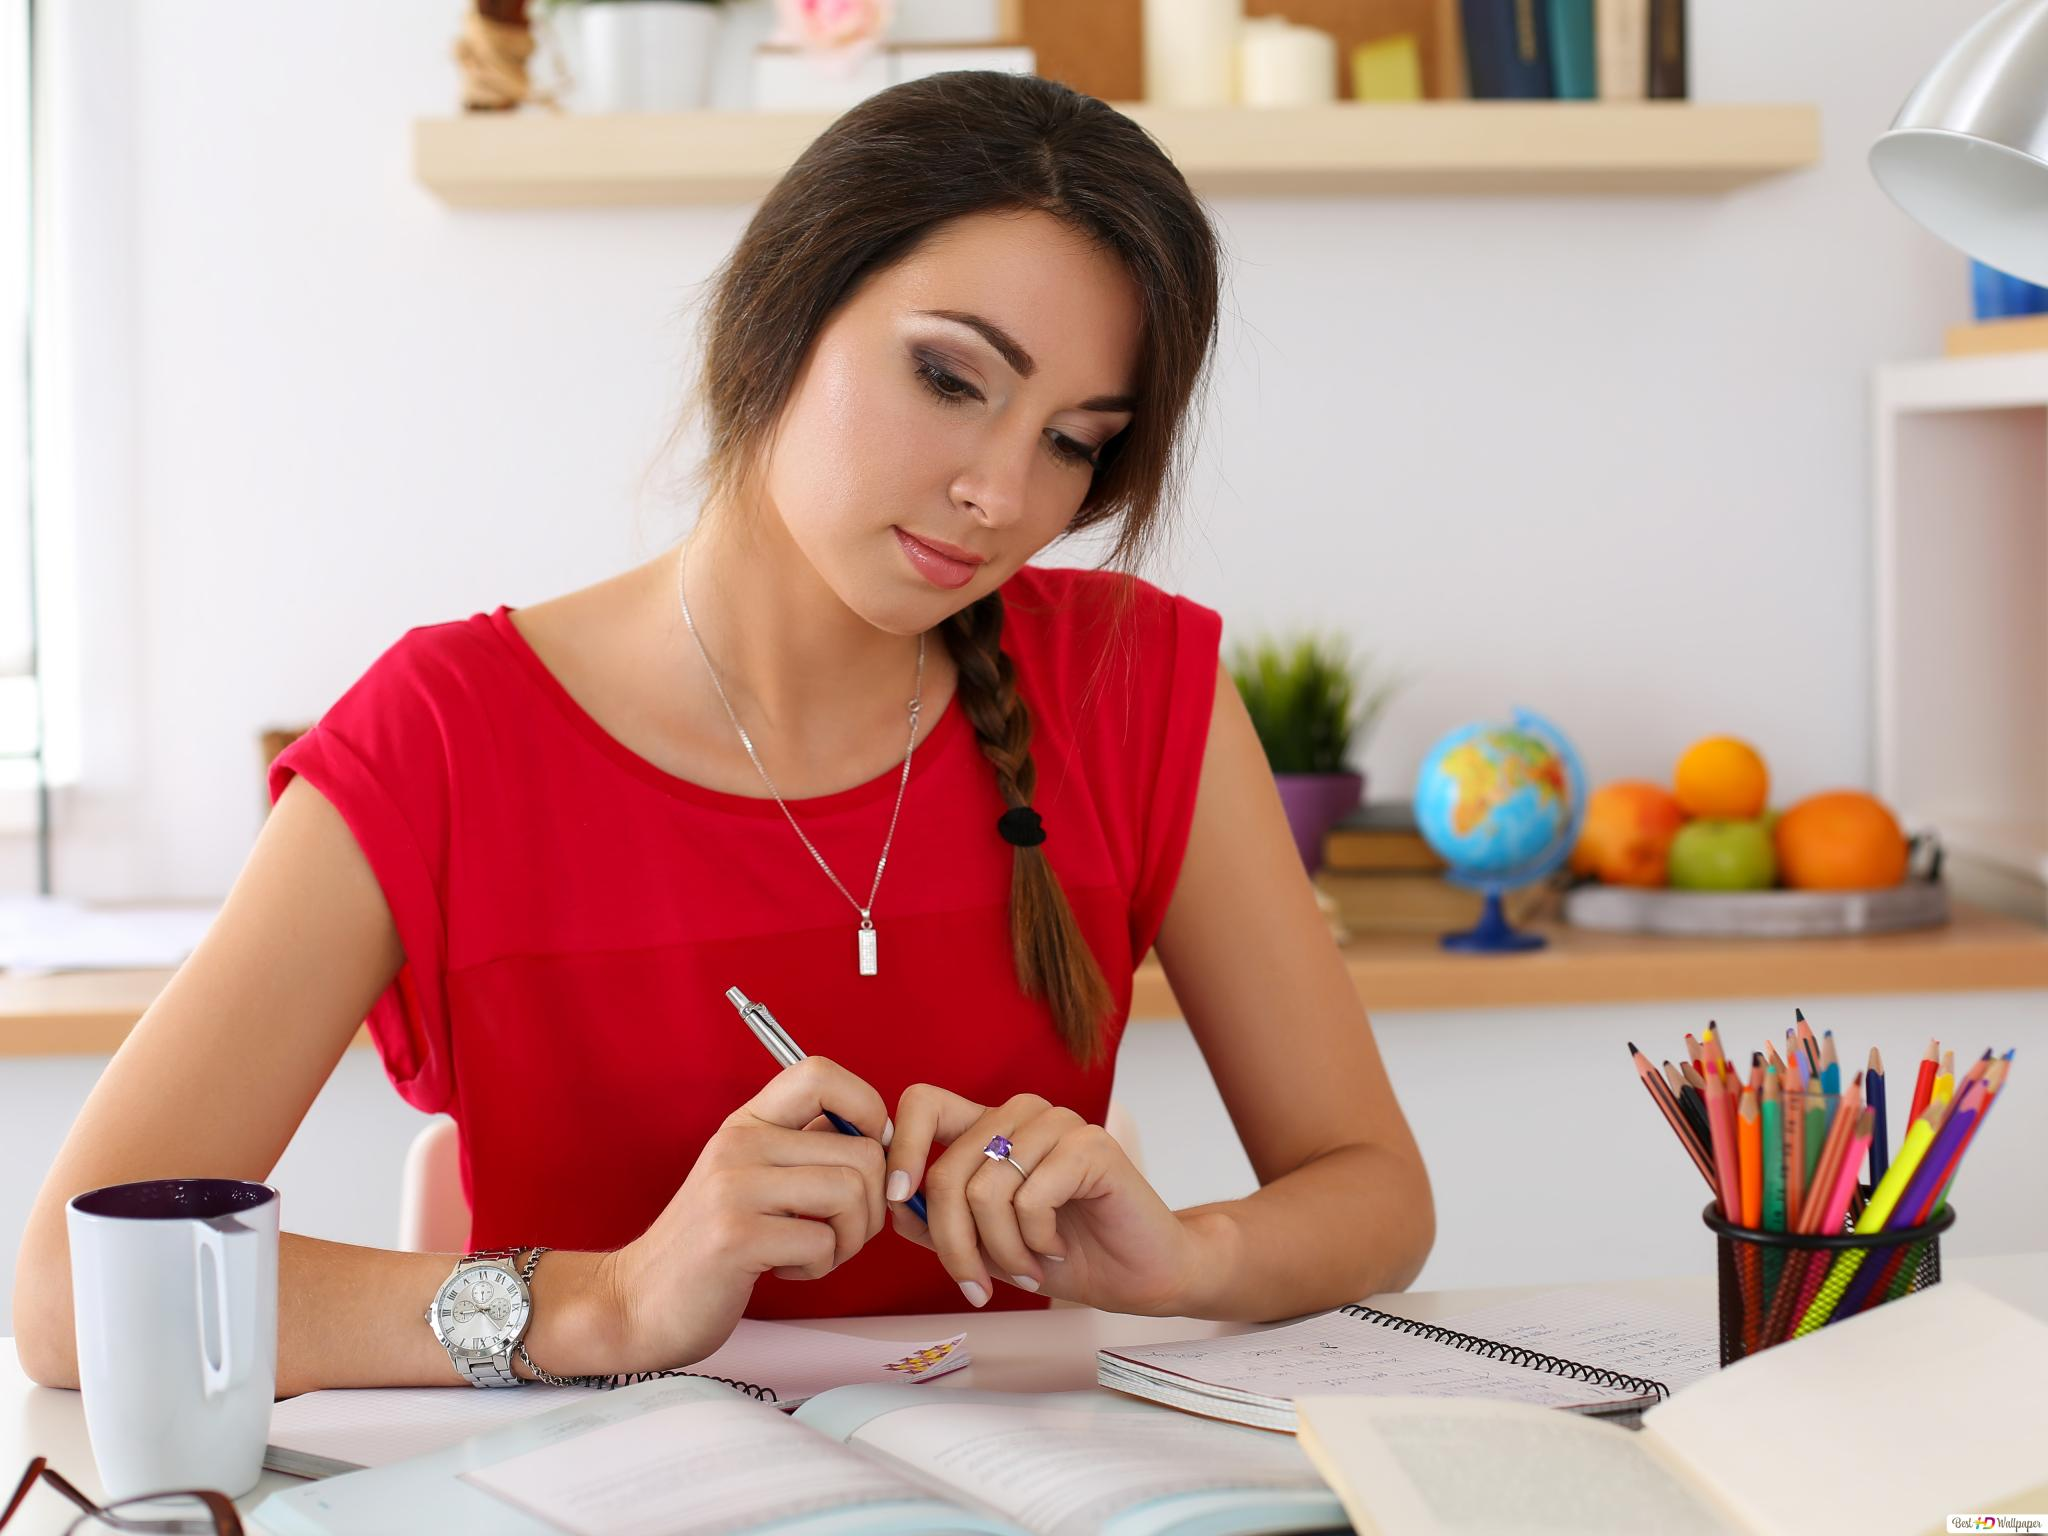 Cute Girl Studying HD wallpaper download